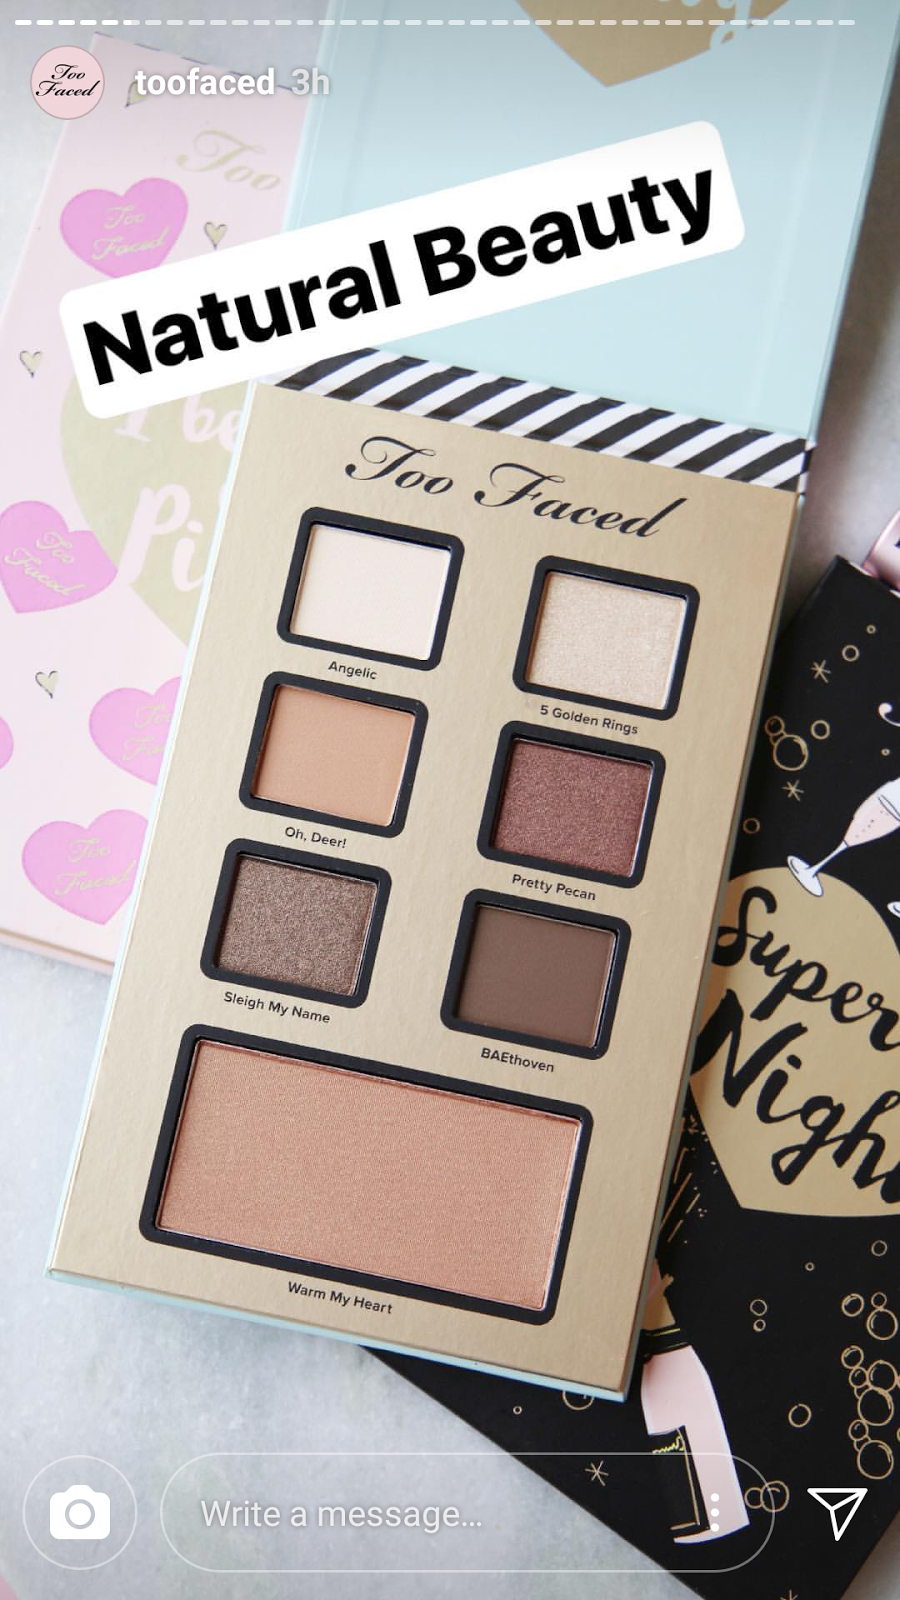 too faced best year ever makeup collection swatches natural beauty